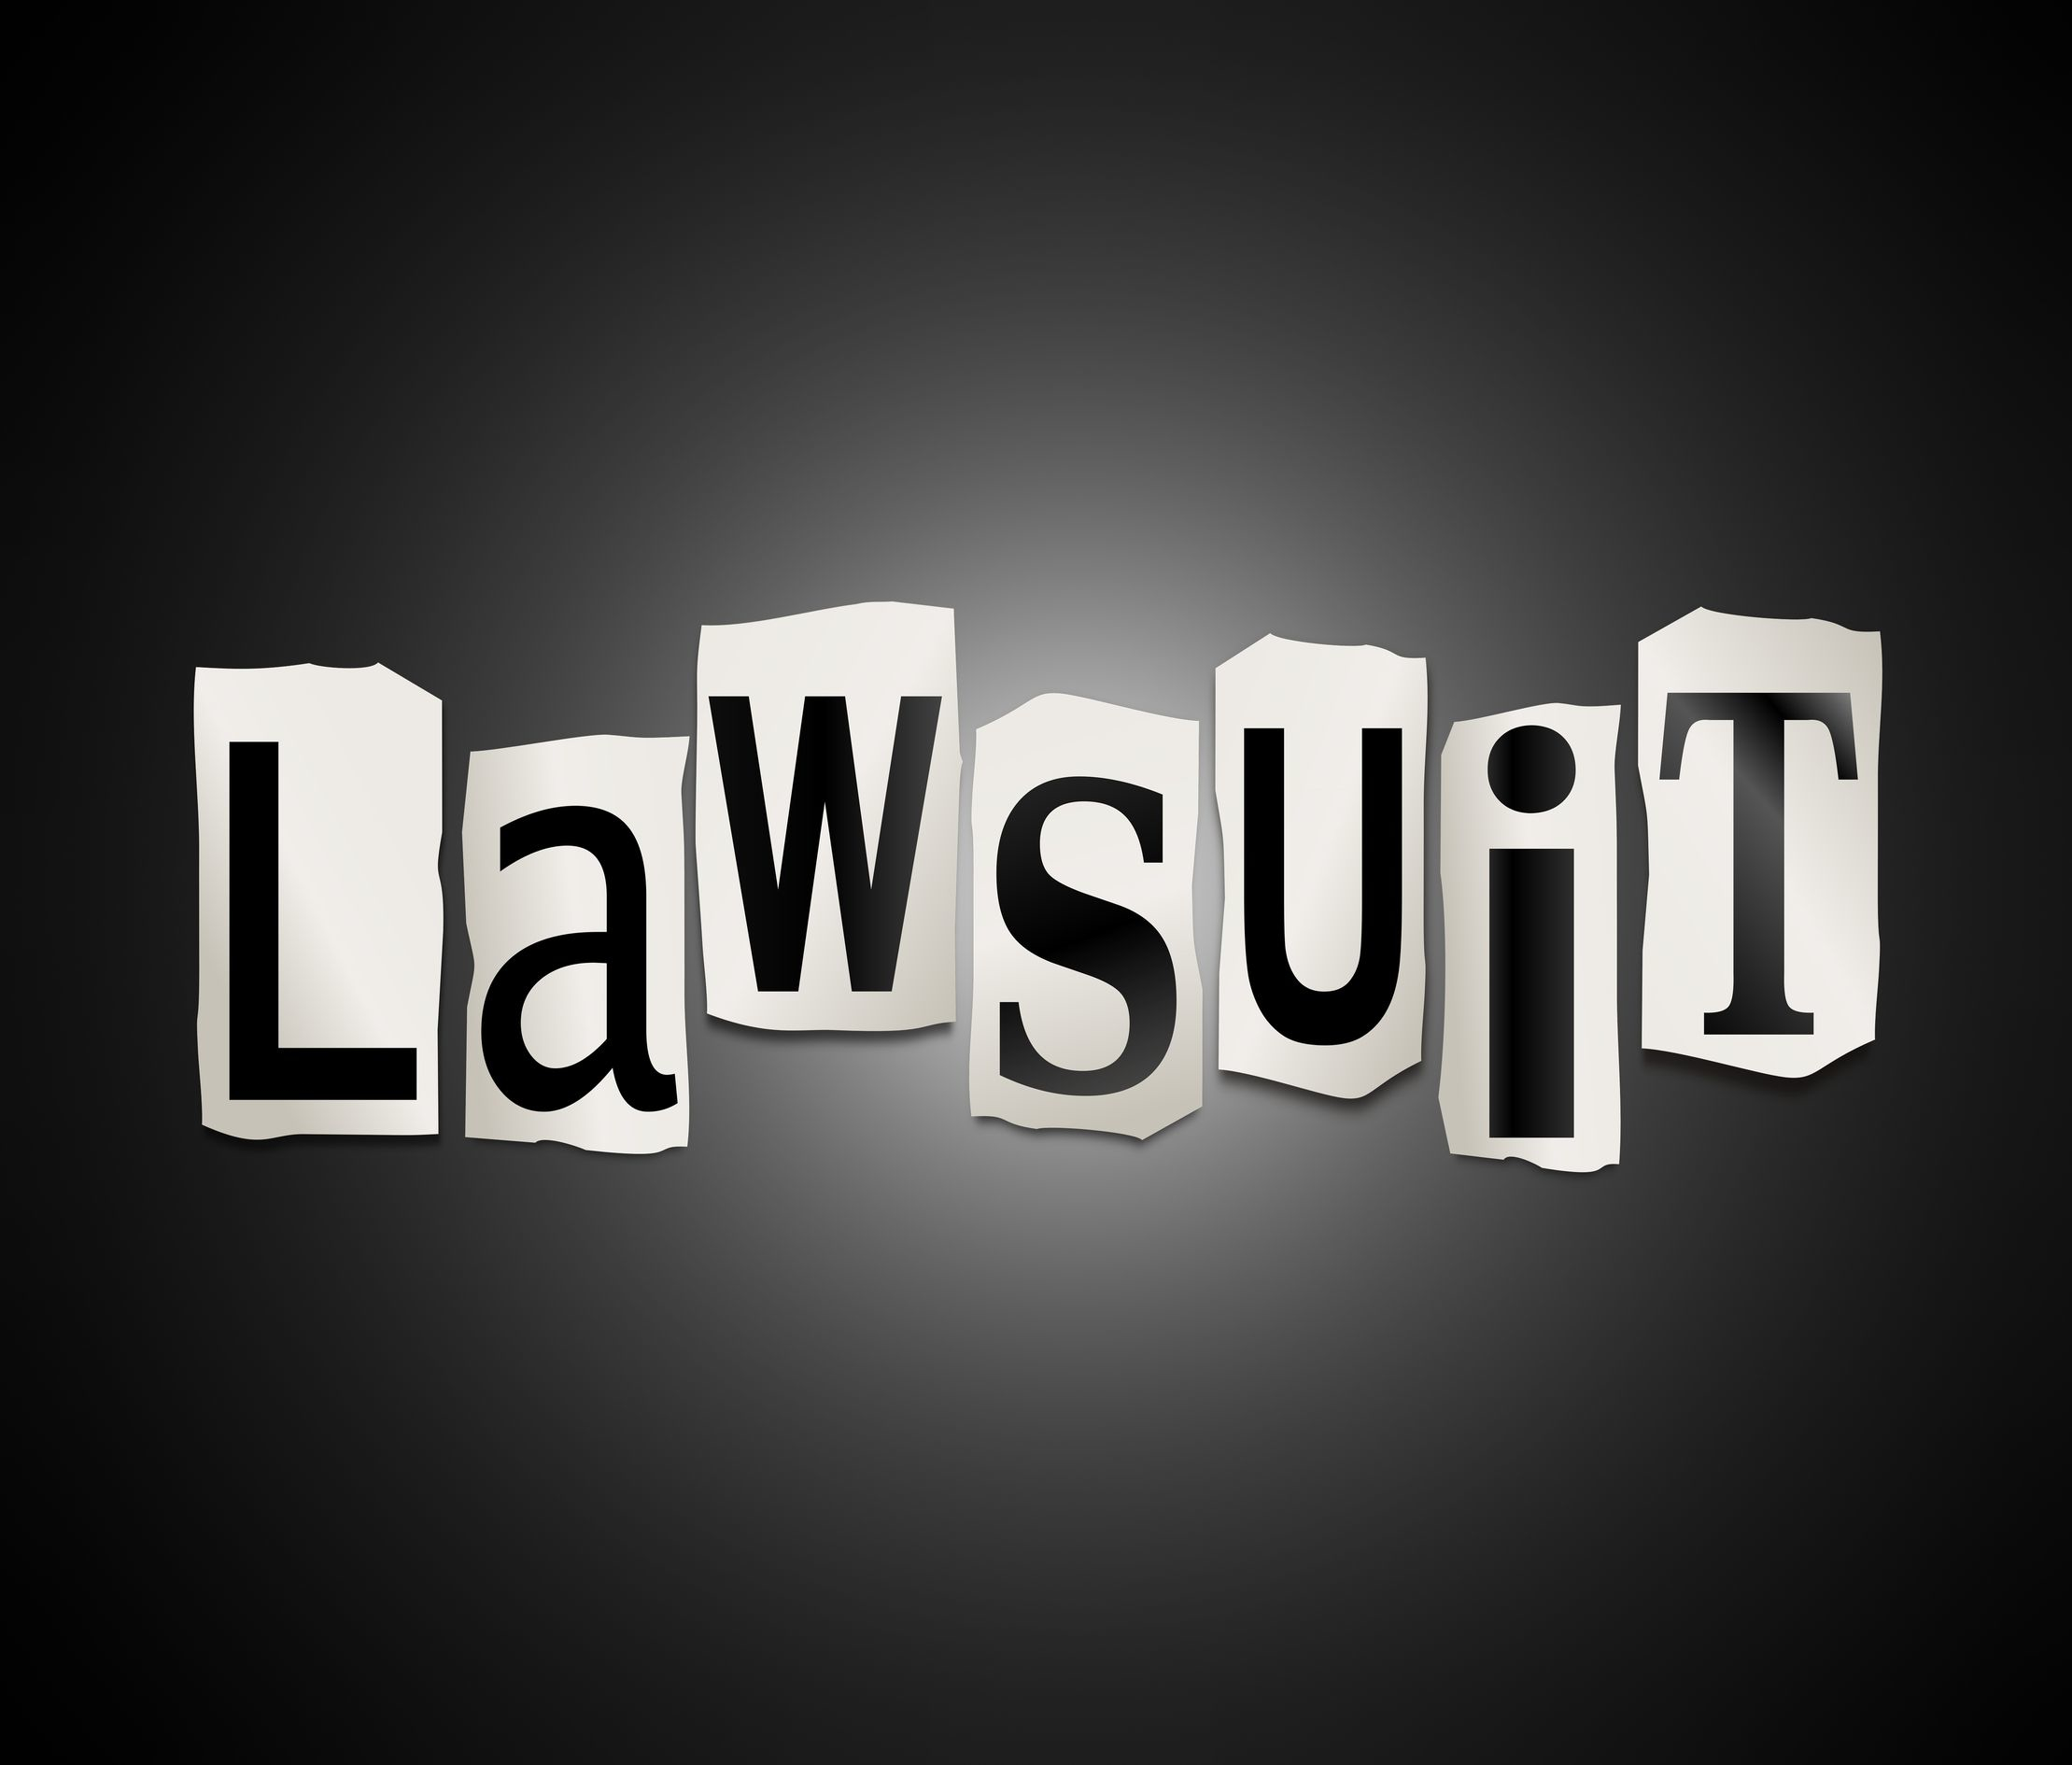 The Lawsuit Epidemic